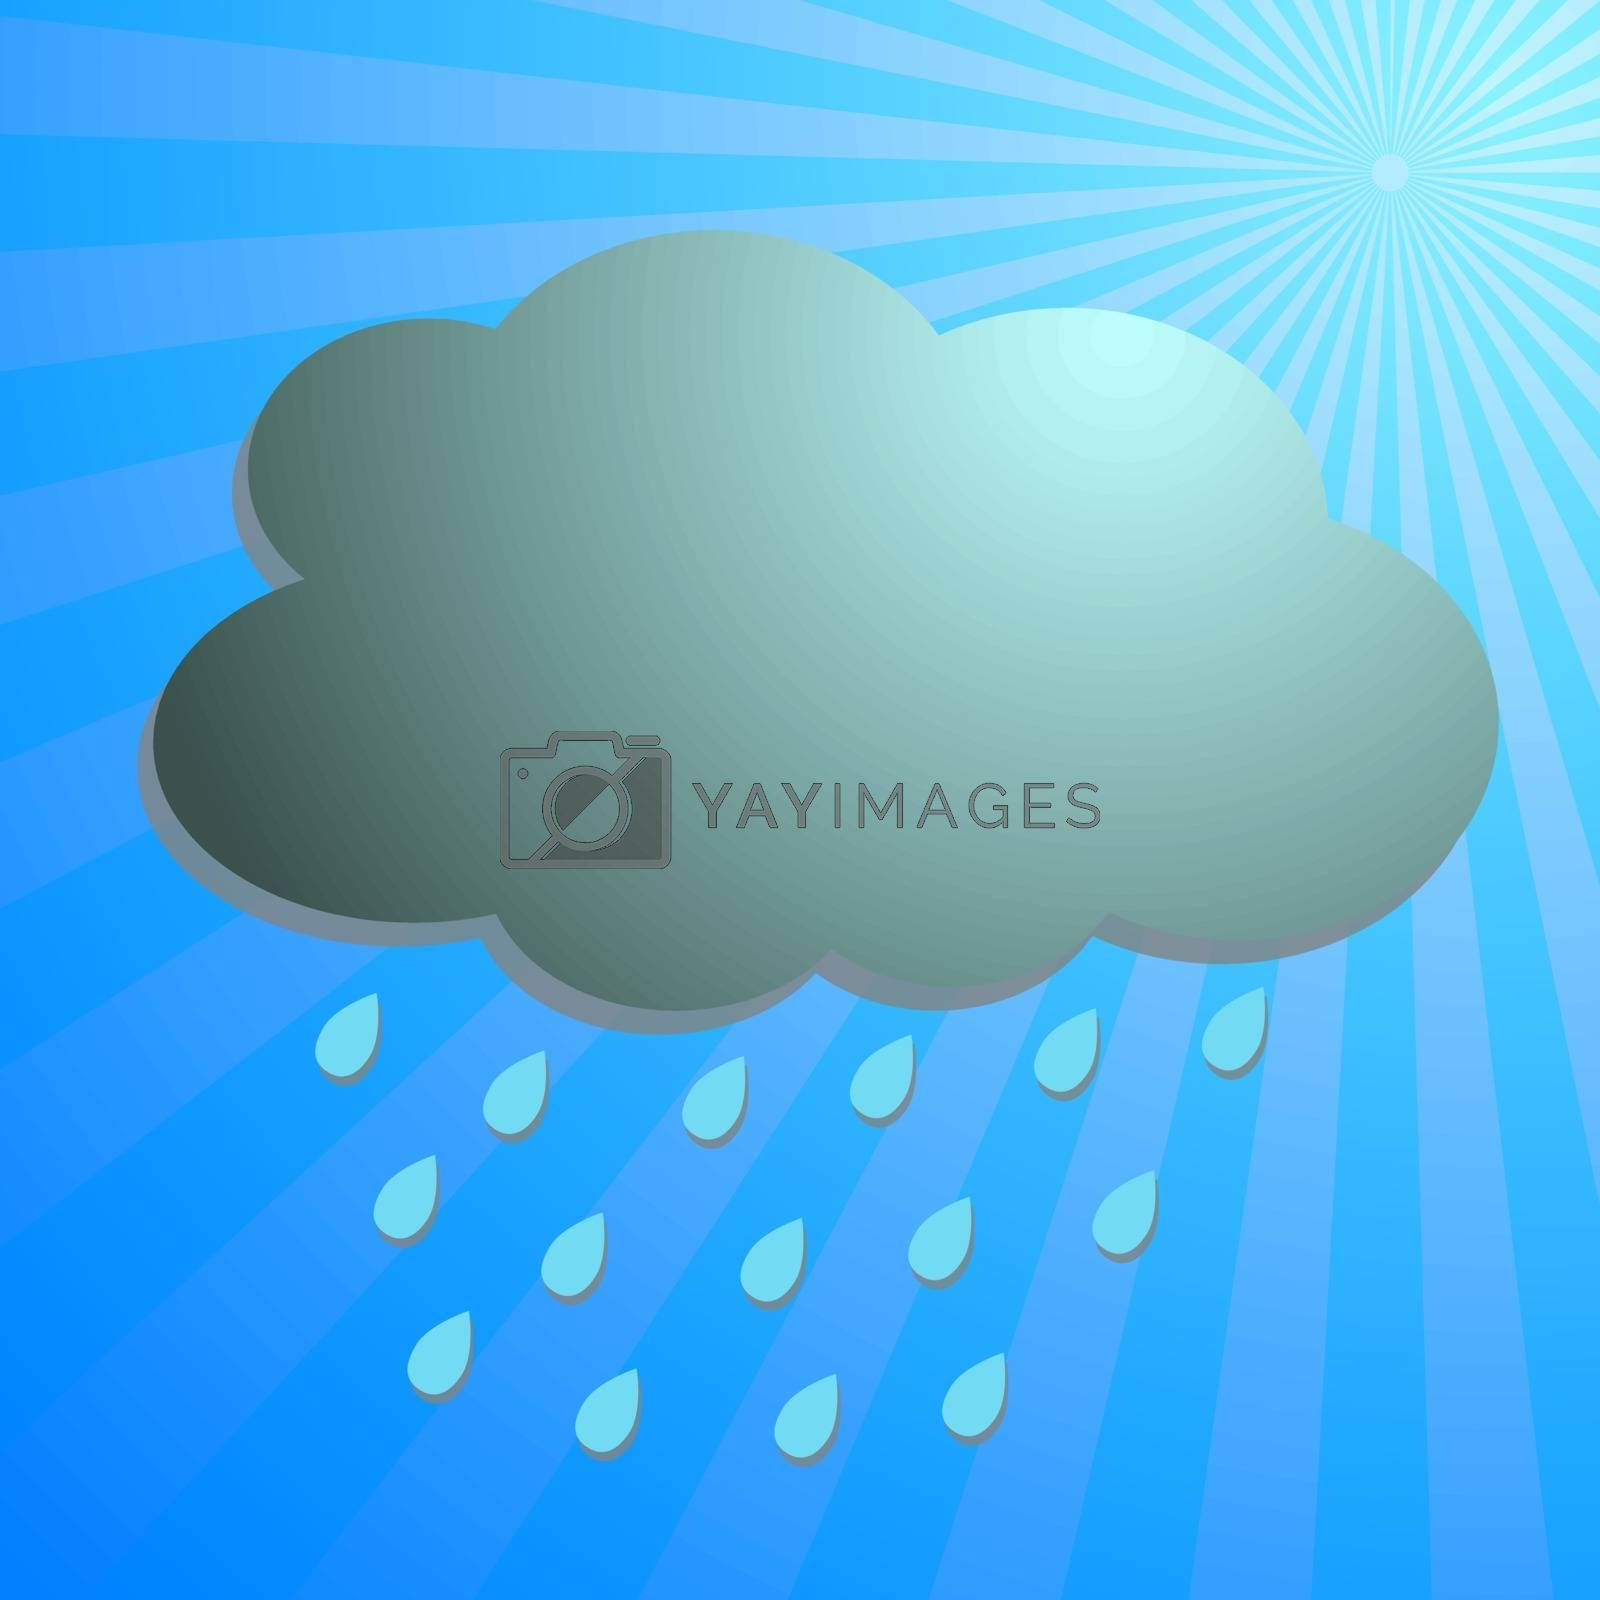 Clouds and rain drop with blue rays, vector illustration